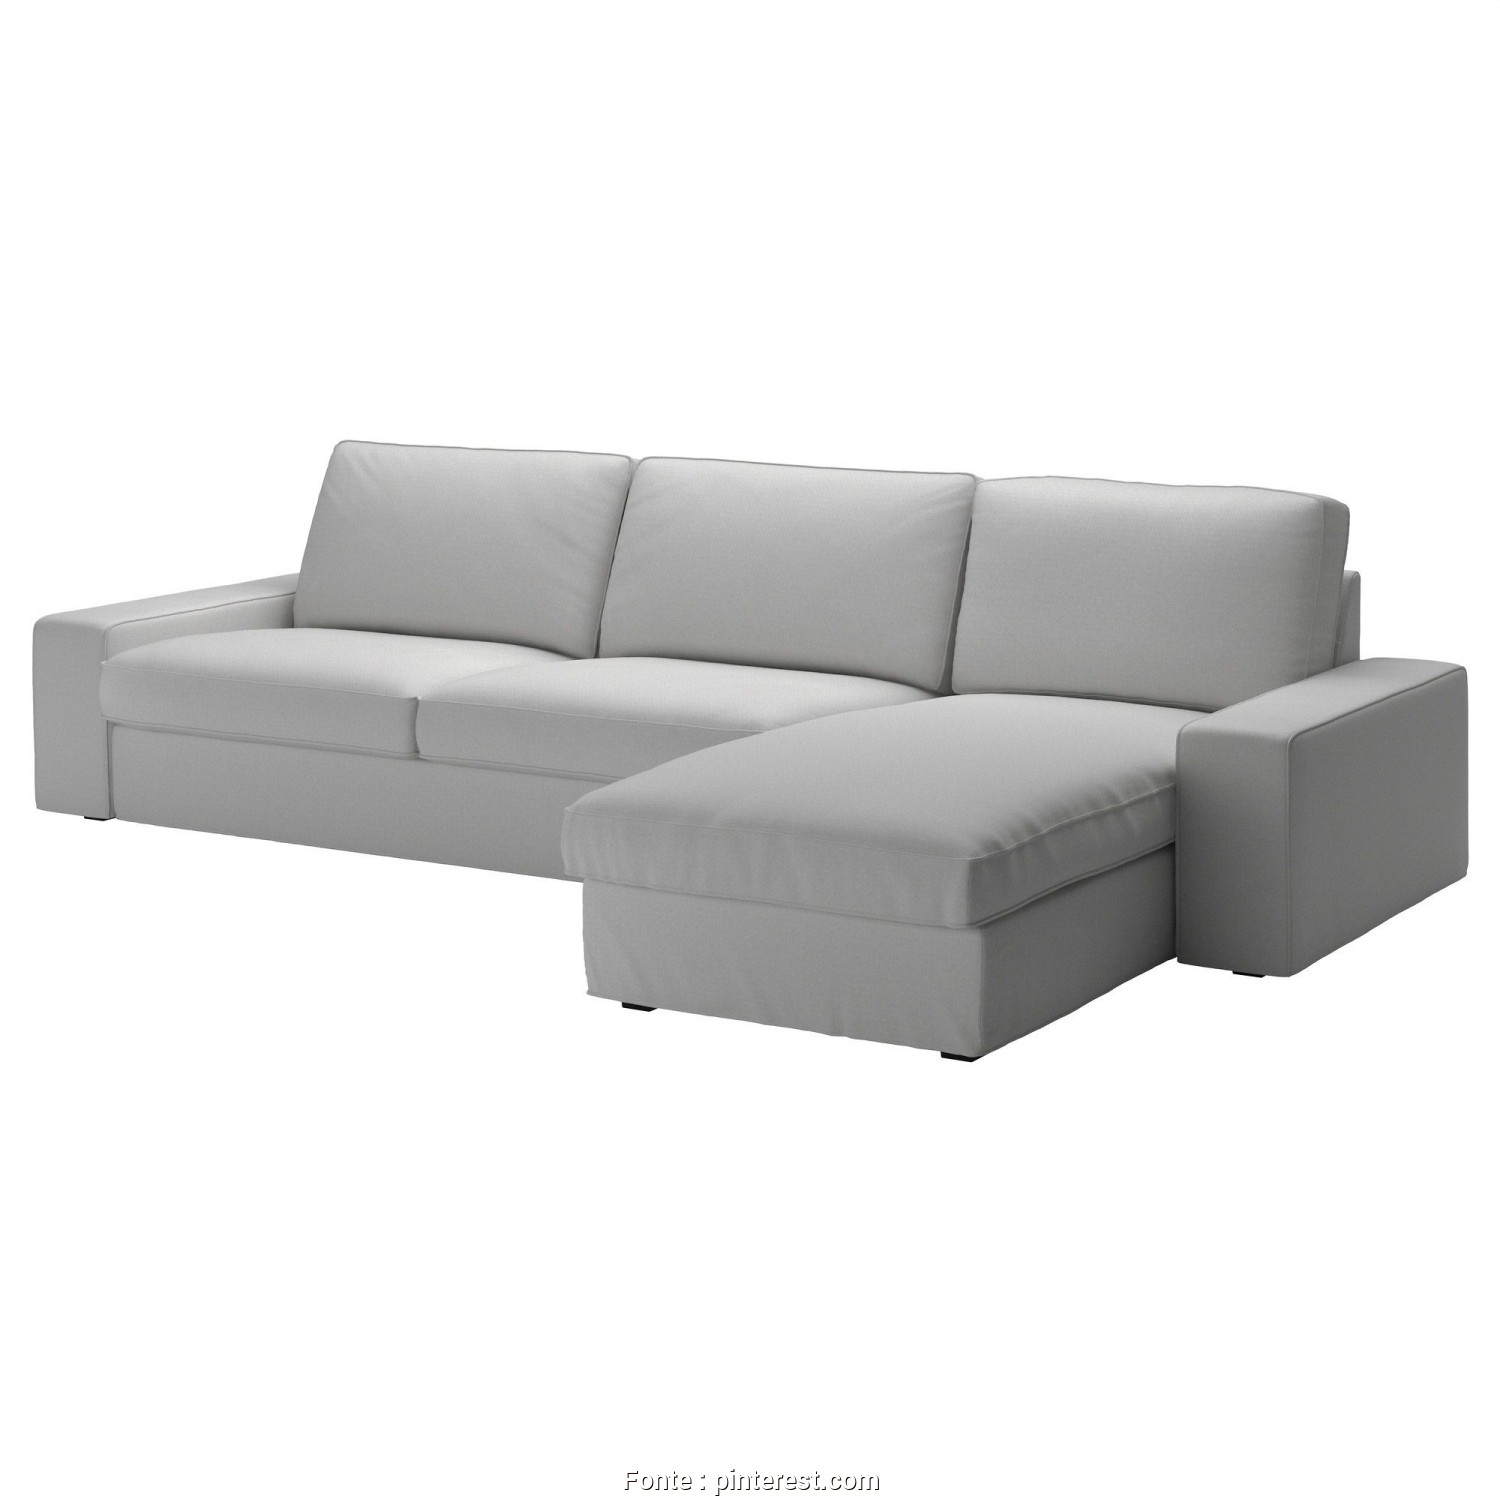 Backabro Bettsofa Ikea, Costoso I.Pinimg.Com/Originals/6A/90/0F/6A900Fb72142D28785